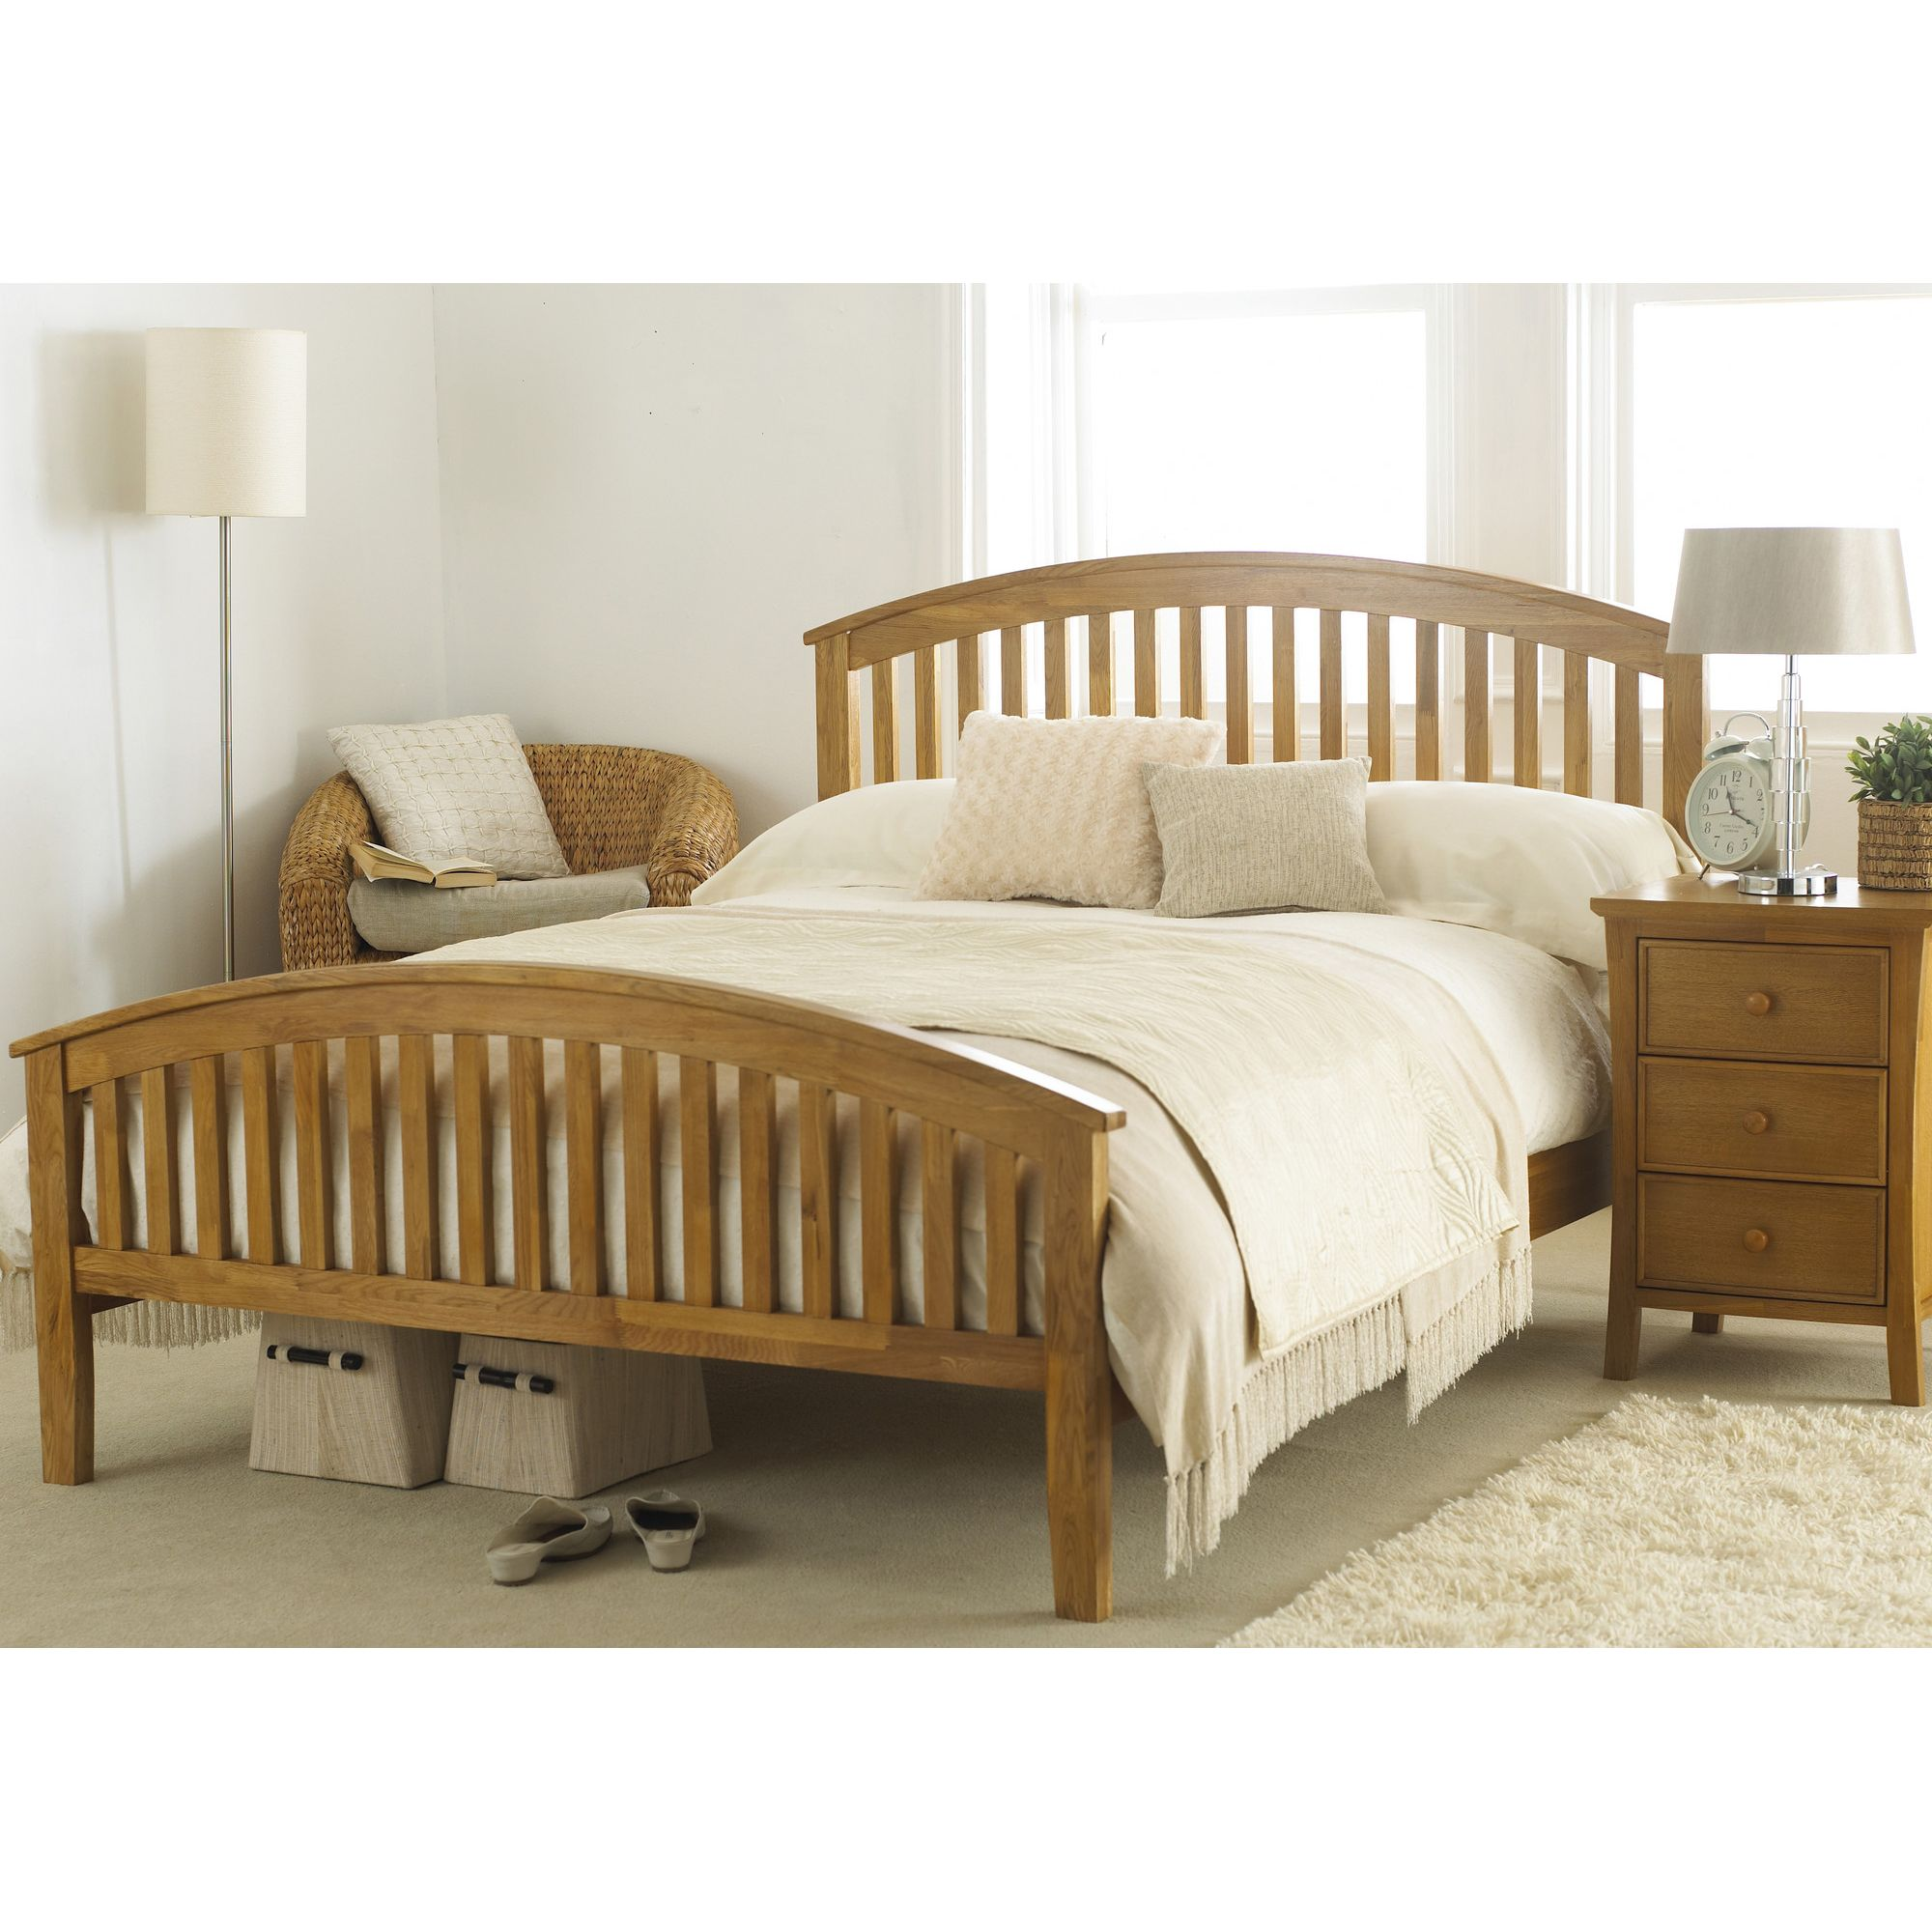 Hyder Torino Oak Bed - Double at Tesco Direct